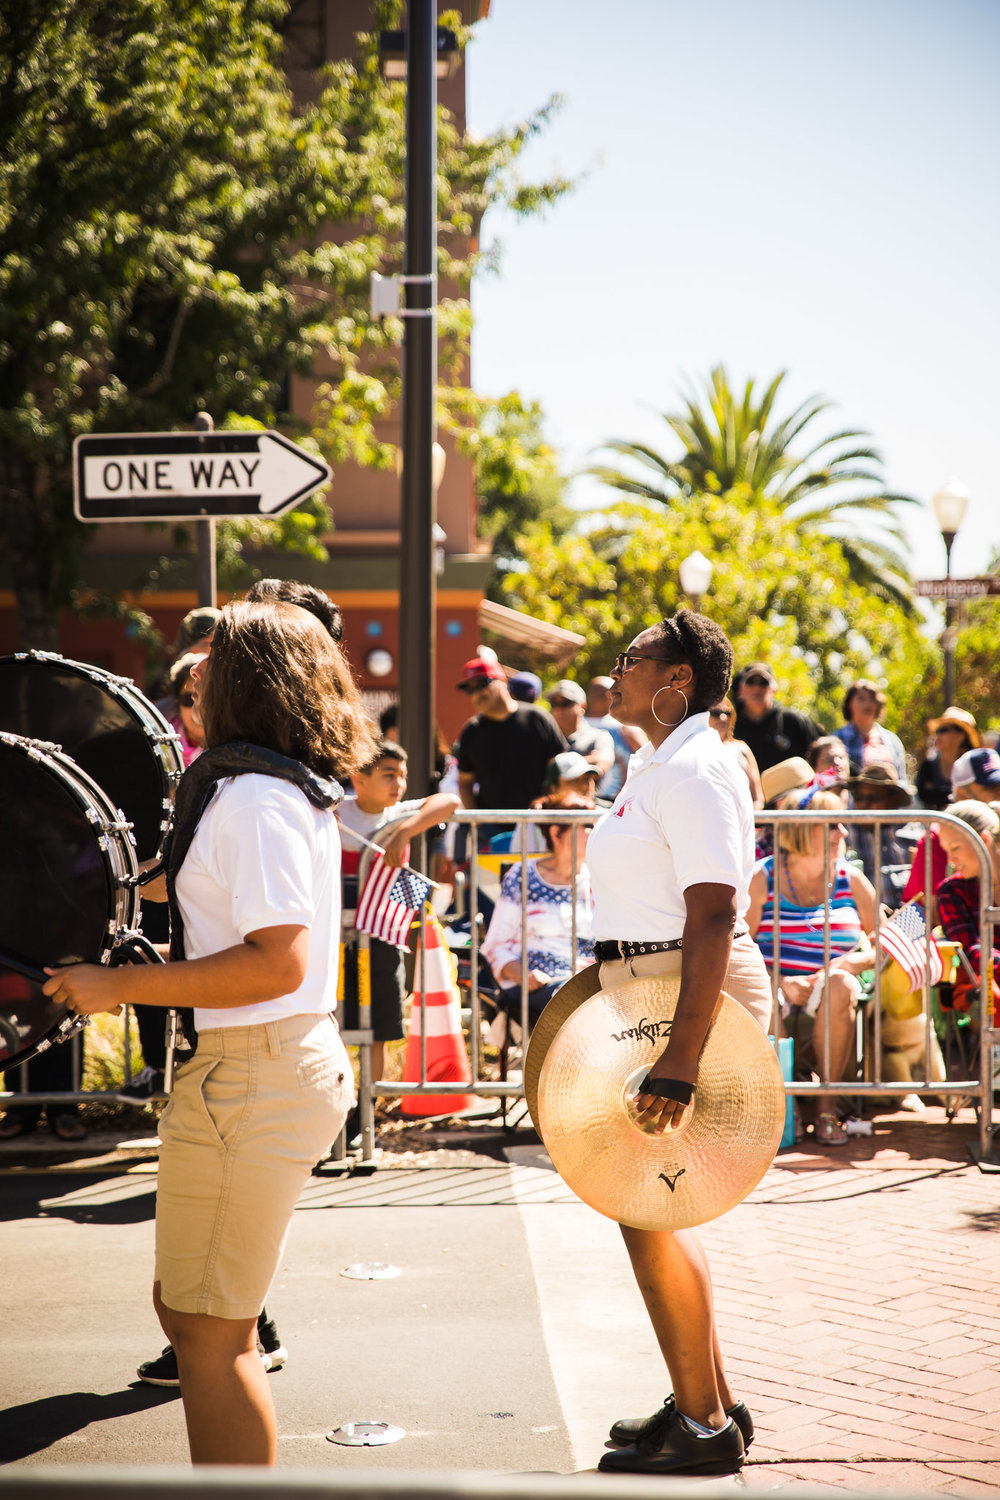 Archer_Inspired_Photography_Morgan_Hill_California_4th_of_july_parade-79.jpg